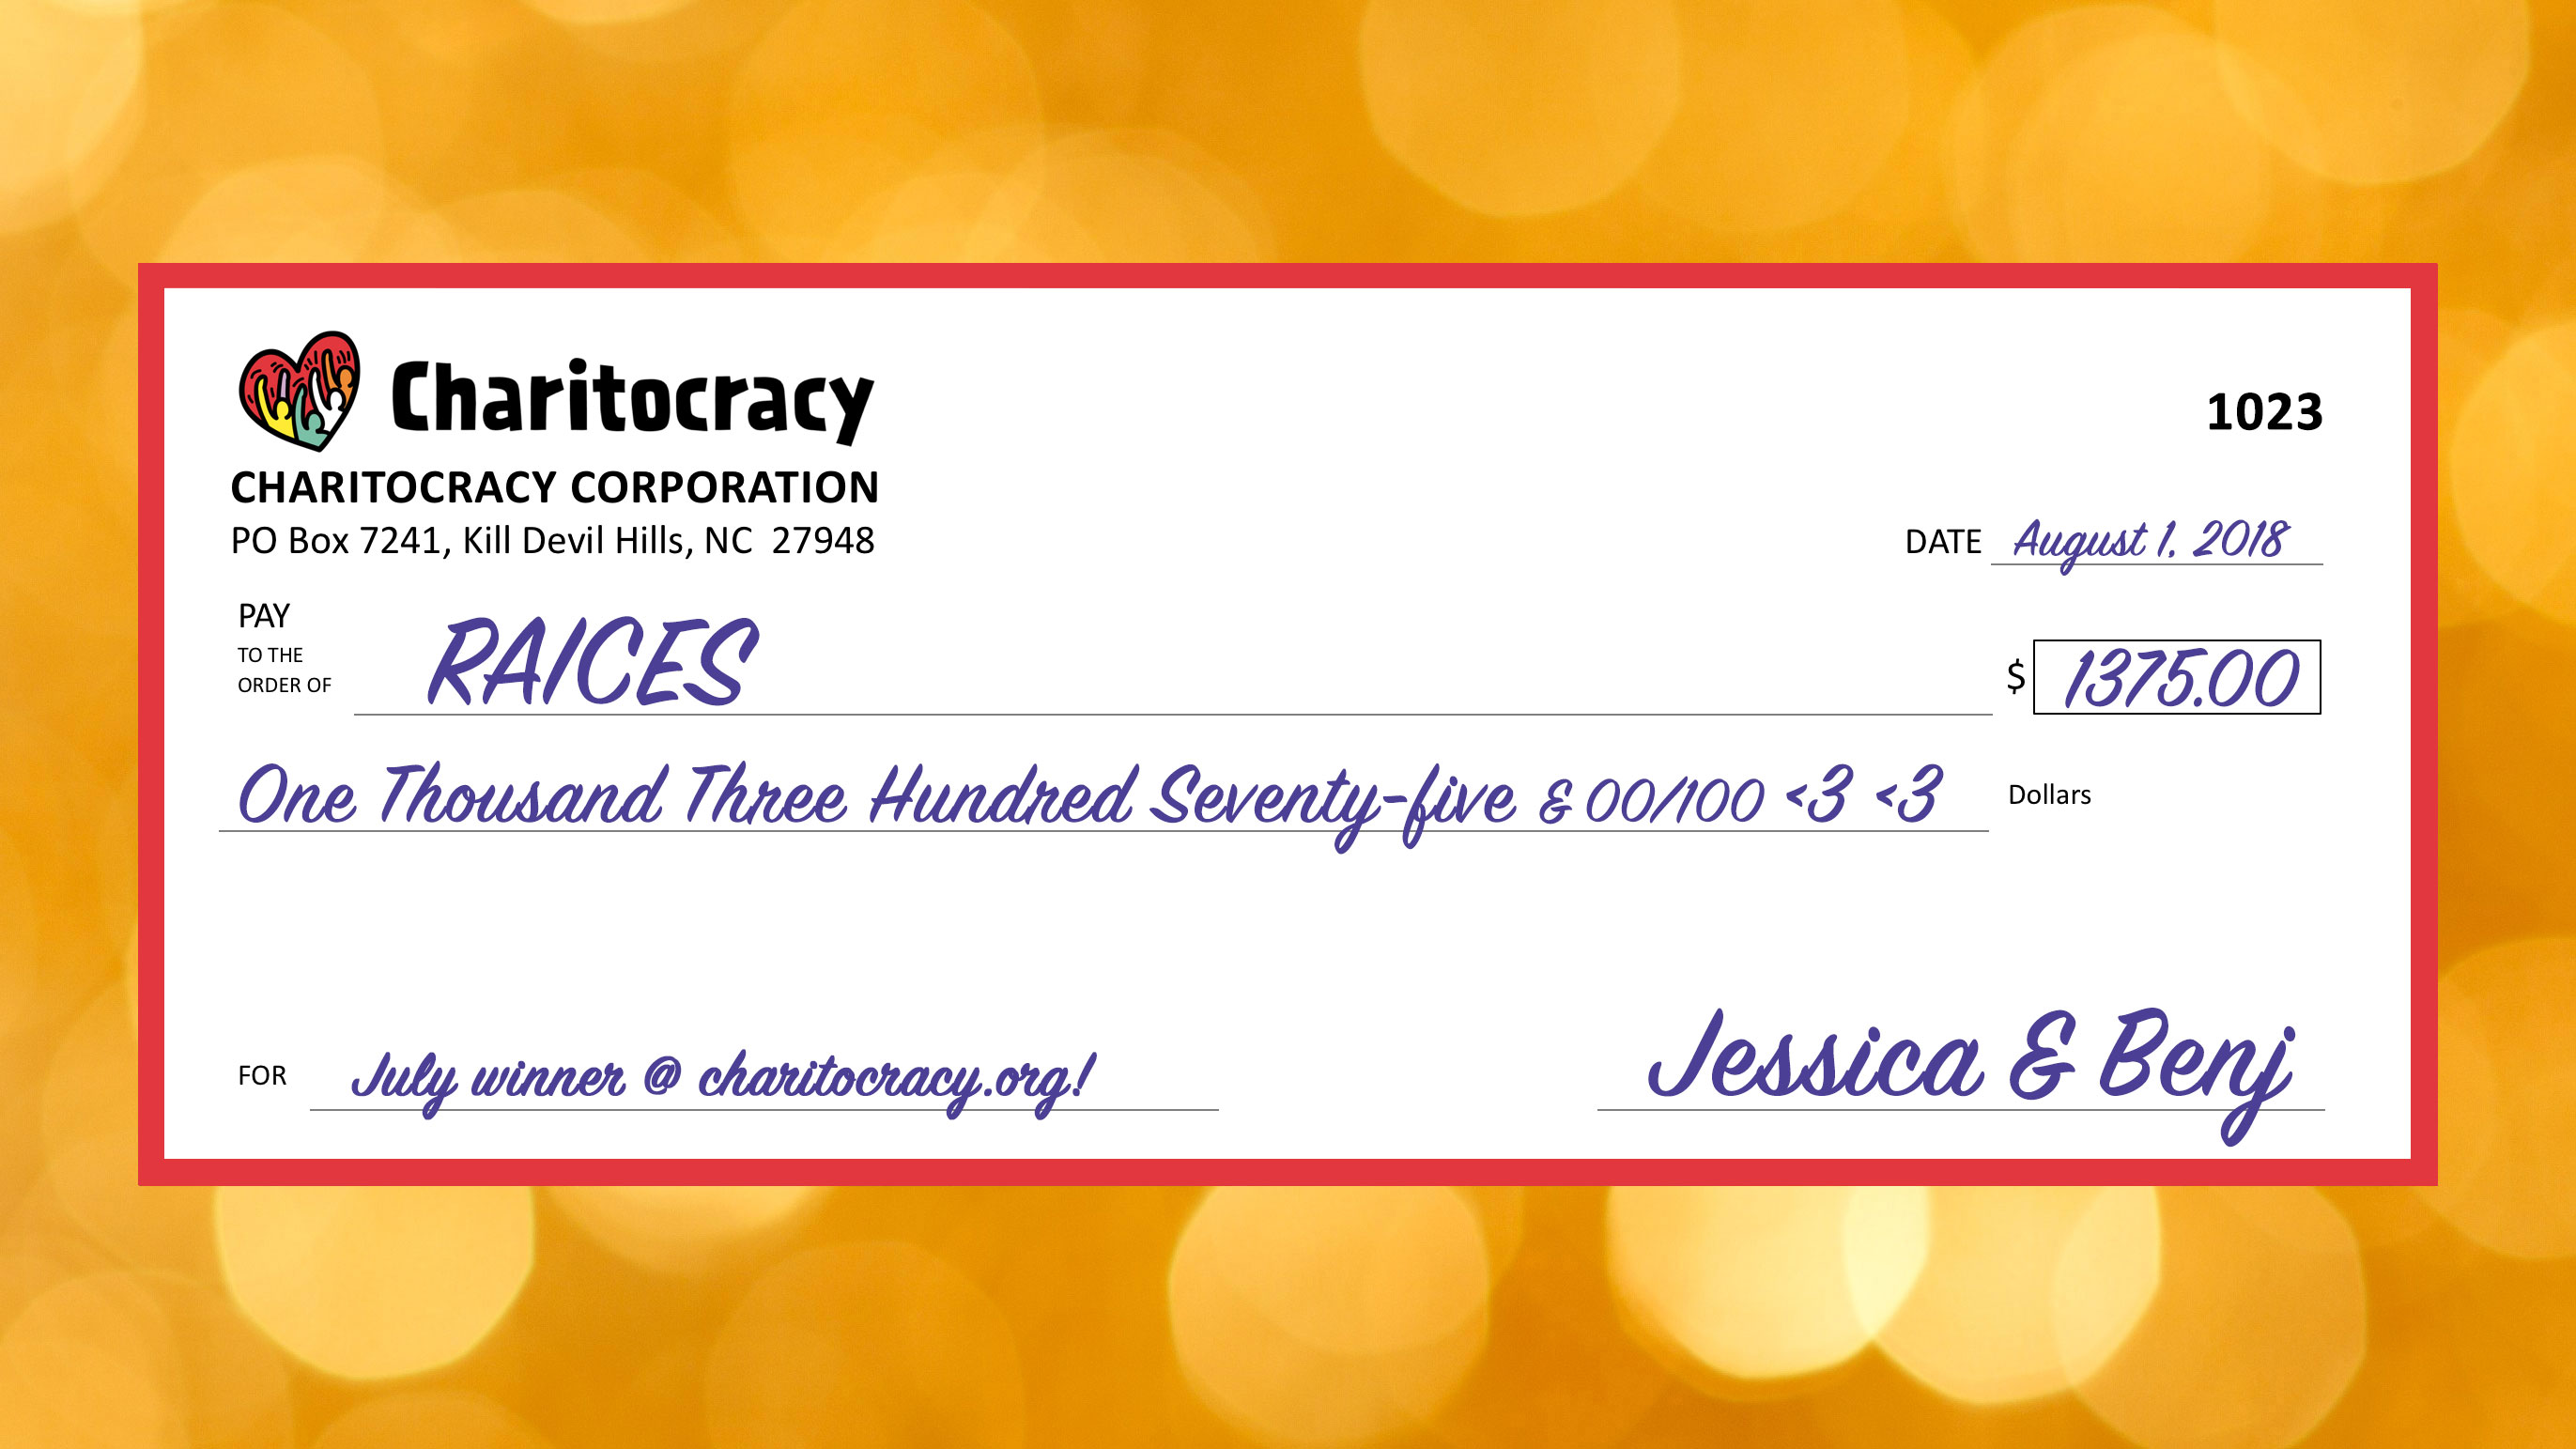 Charitocracy's 23rd check: to RAICES for $1375